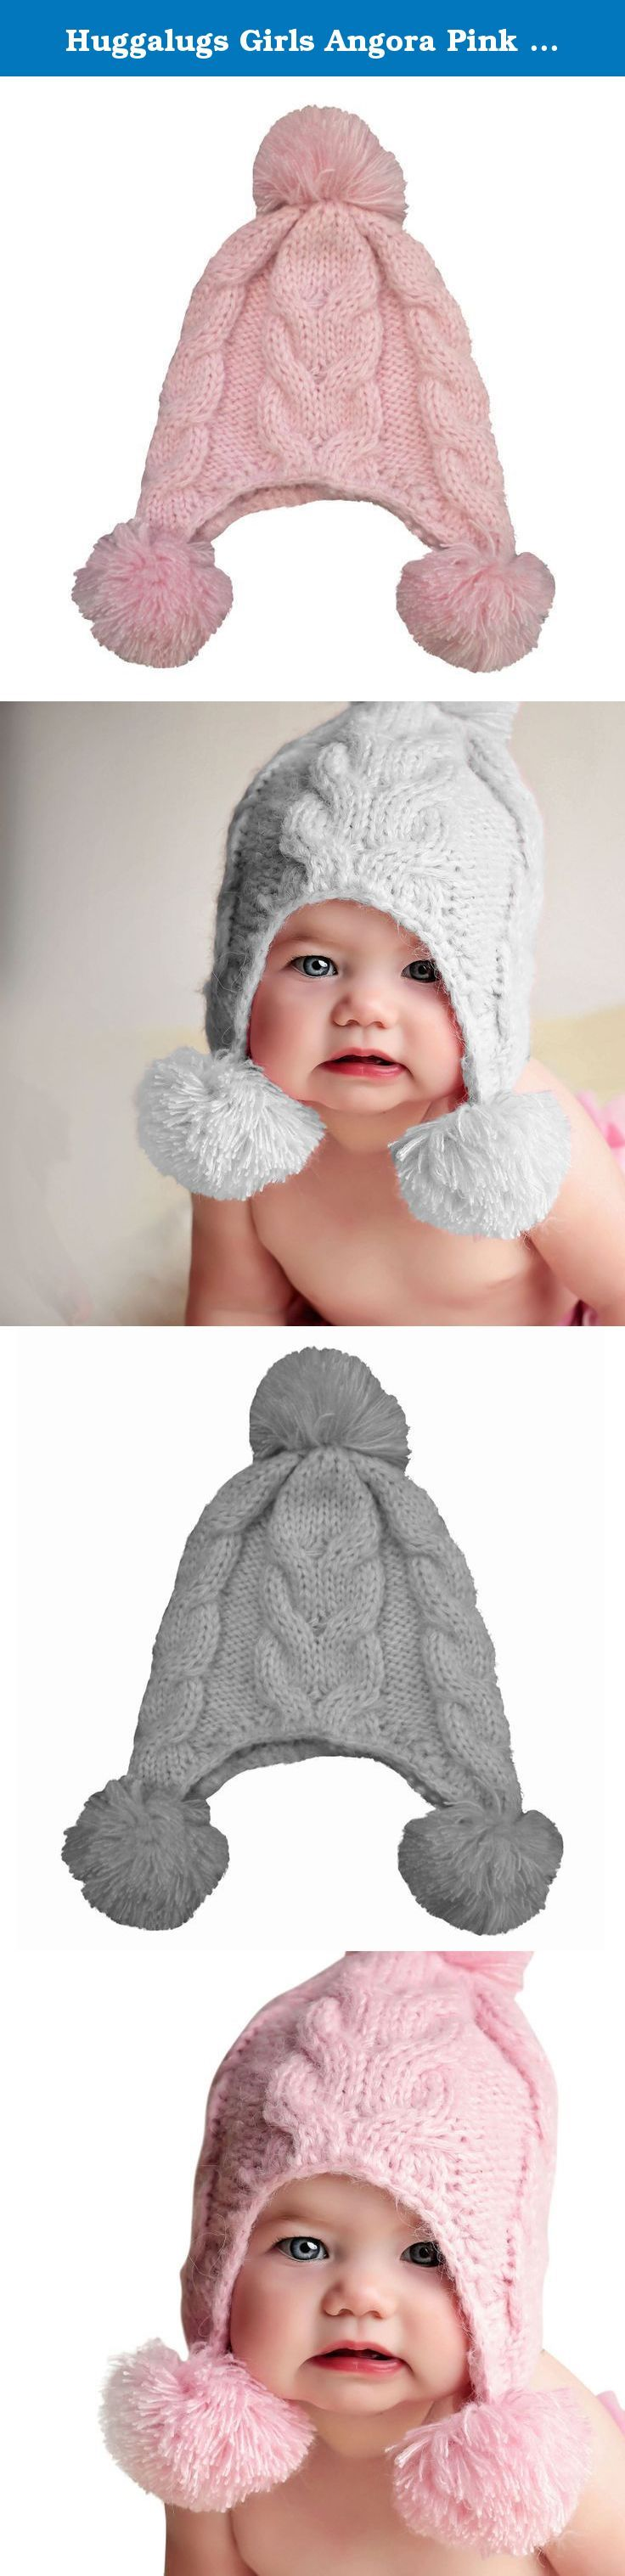 Huggalugs Girls Angora Pink Fizz Pom Pom Beanie Hat Large (2-6yr). Incredibly soft cable knit beanie in glacier grey has fluffy pom pom accent on each earflap and at the top. So incredibly cute for any little diva.